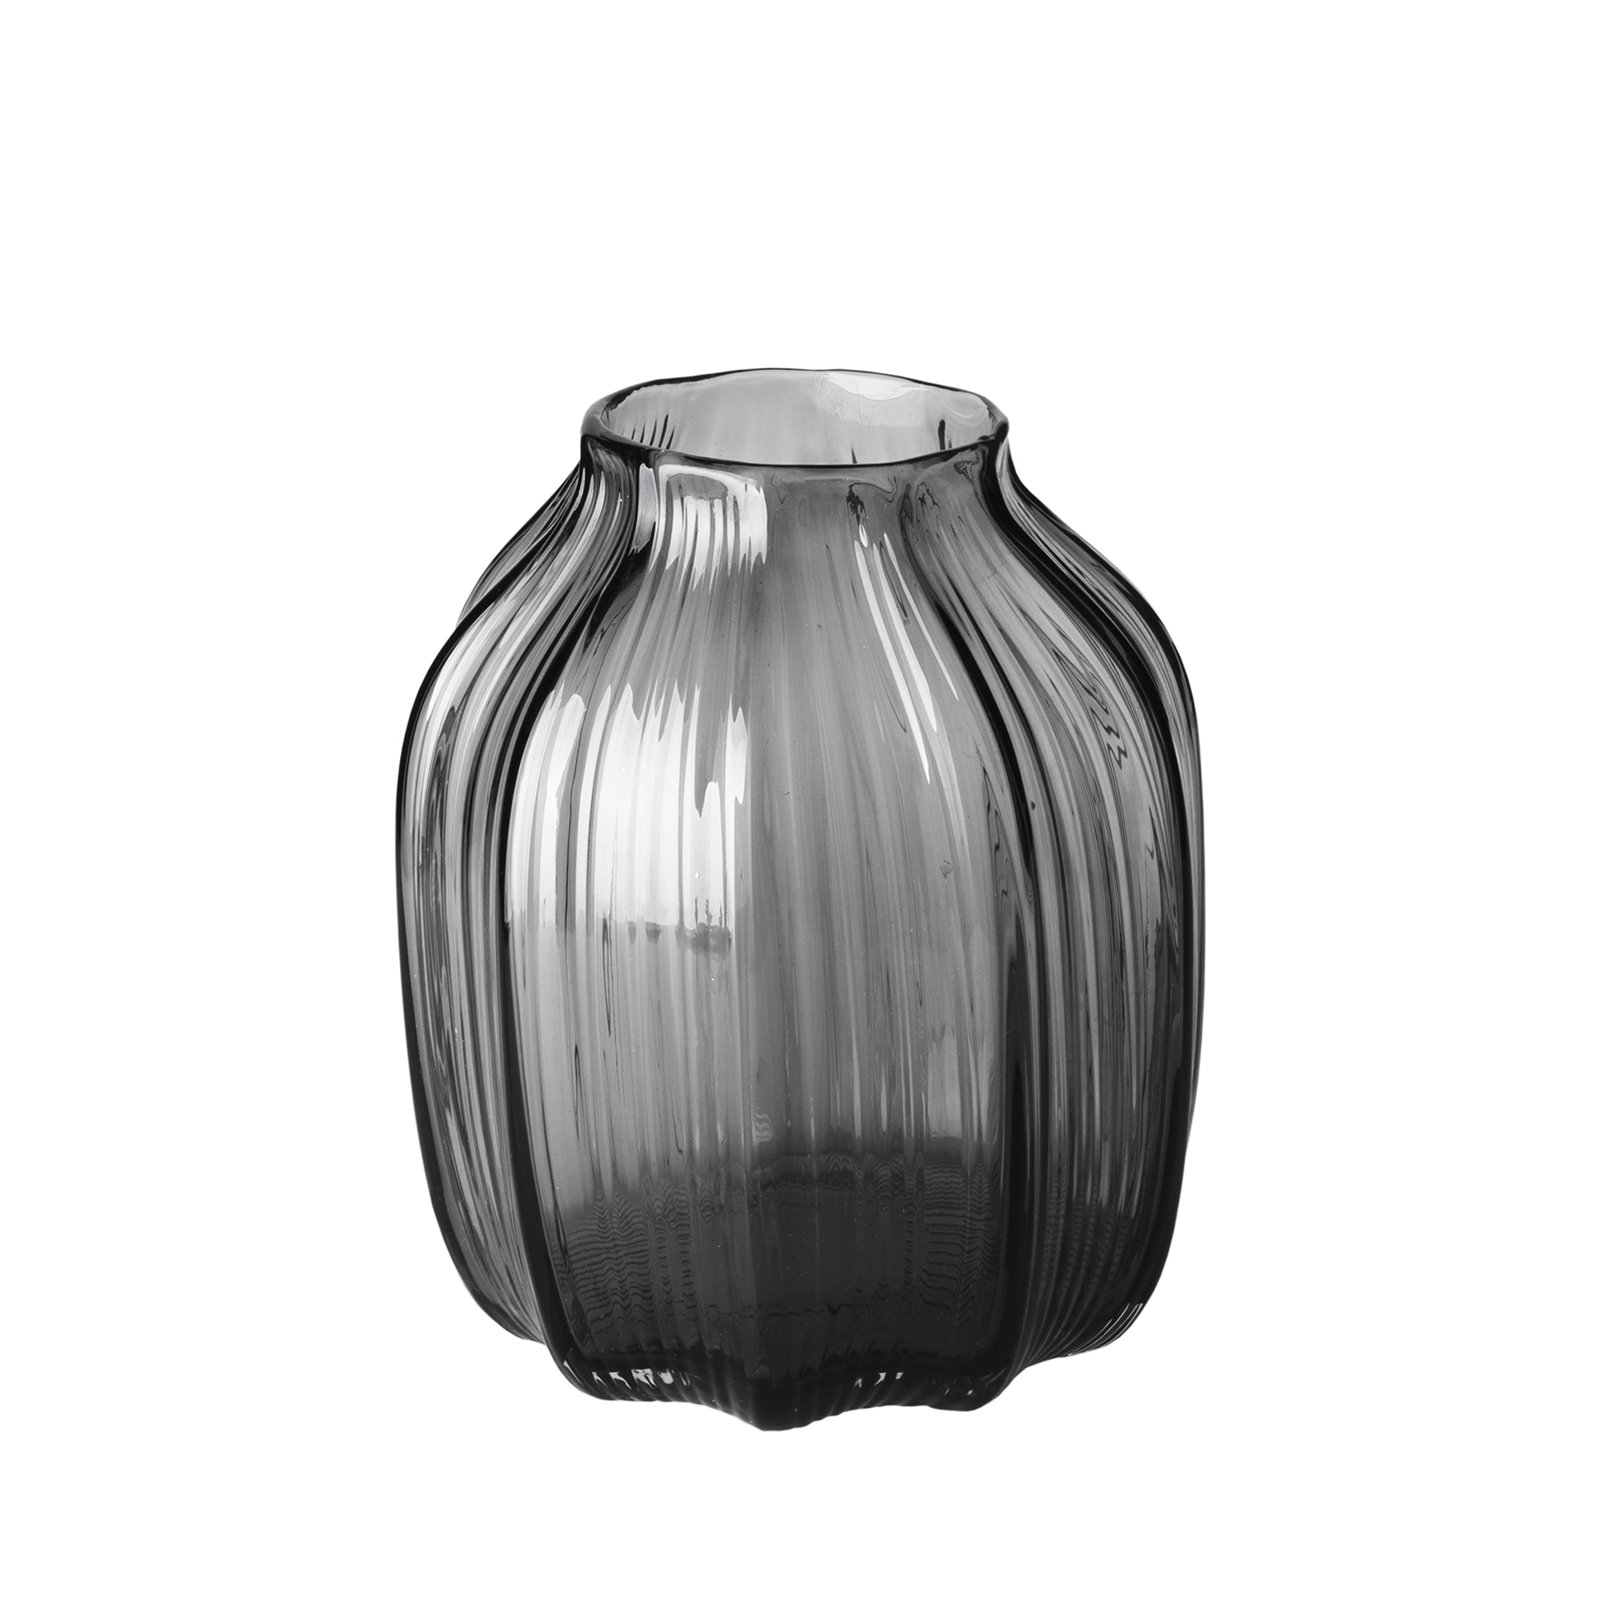 CASAMOTION Vases Hand Blown Solid Color Home Decor Centerpieces Gift Art Ribbed Glass Vase, Smoke, 8''